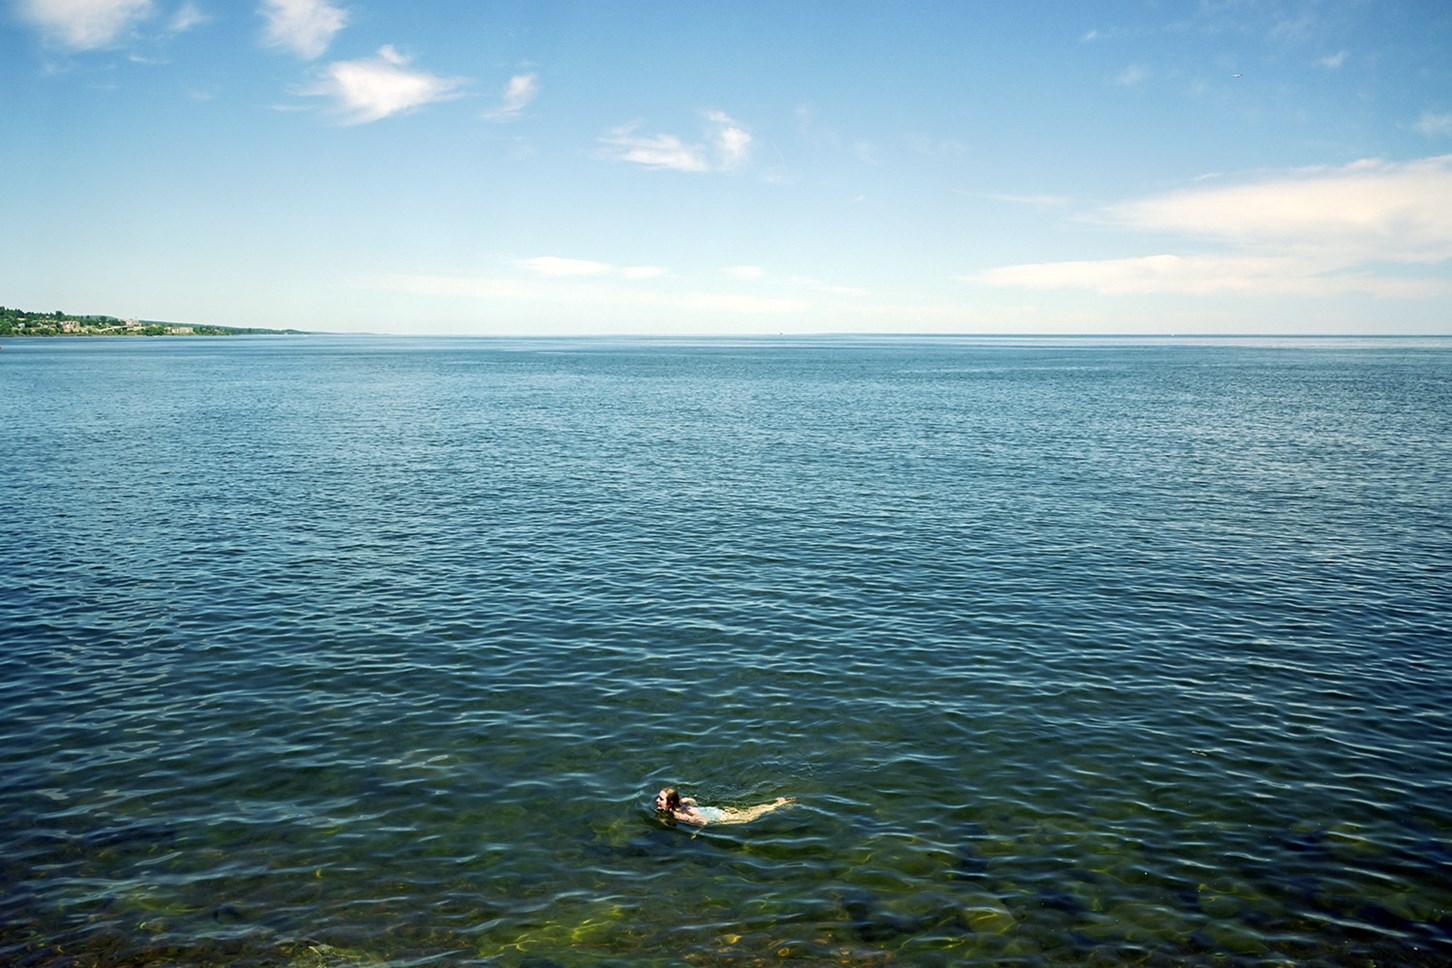 A Swimmer Swims, Duluth, Minnesota, July 2011